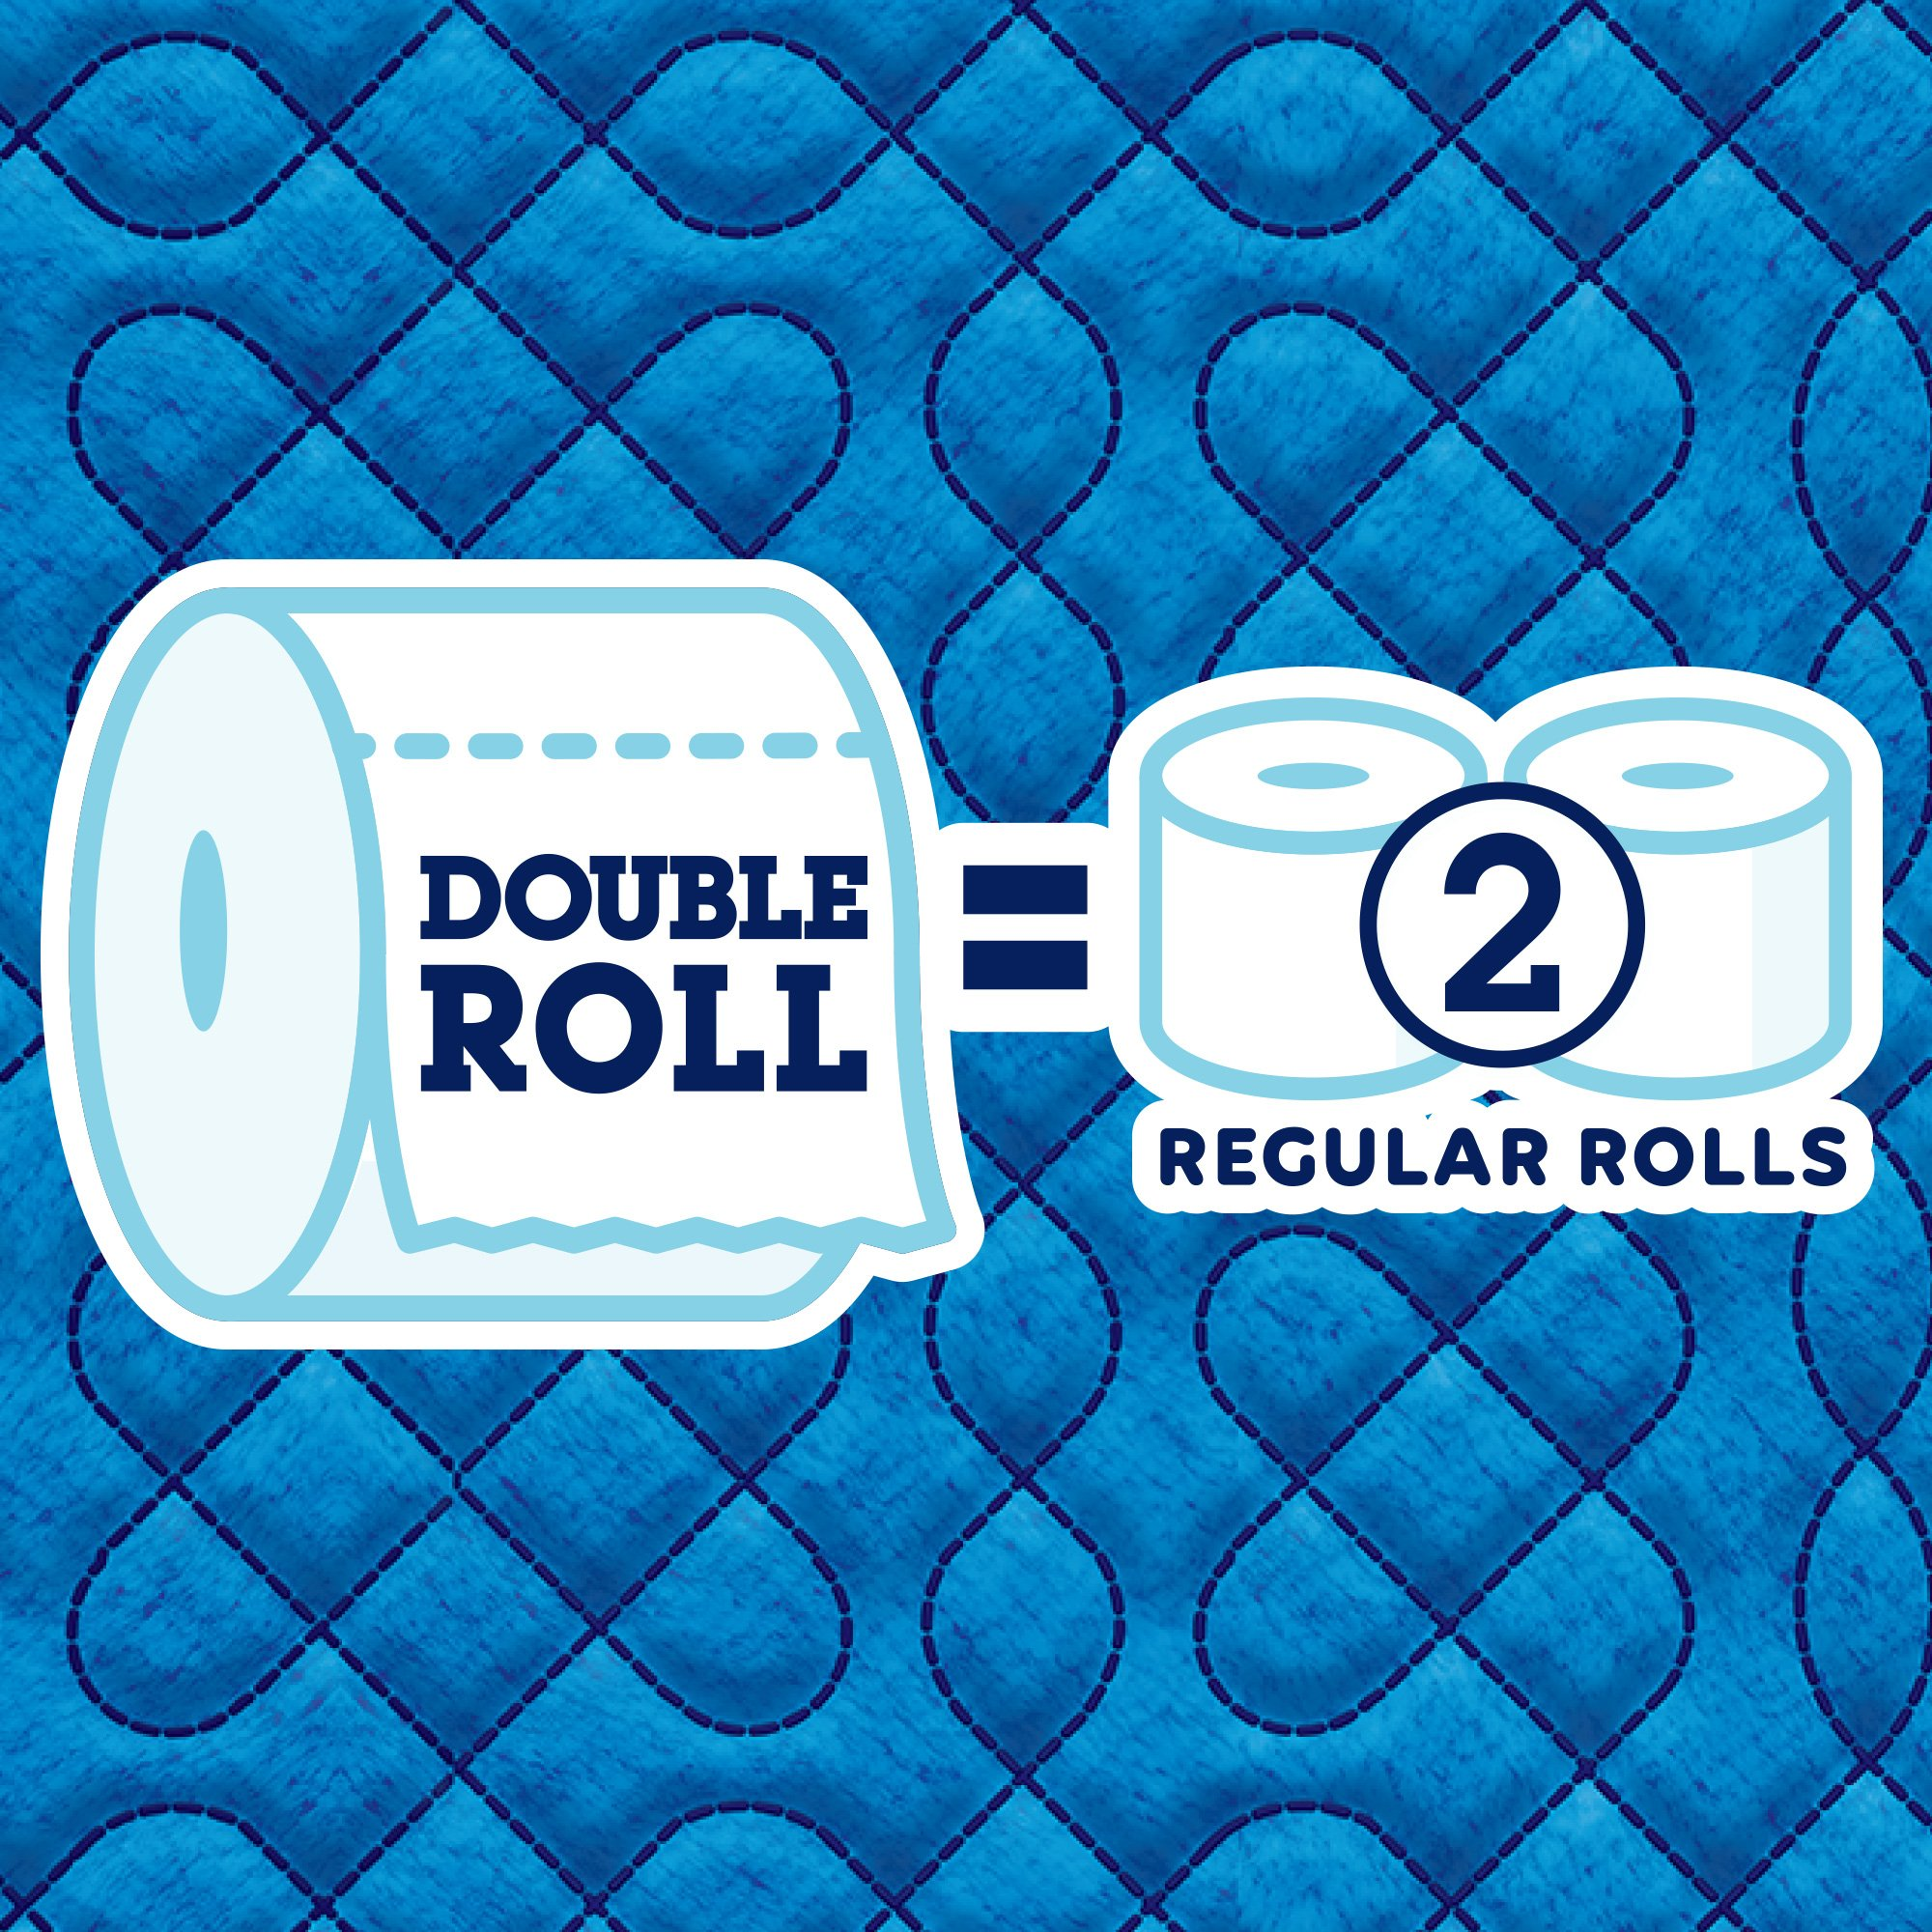 Quilted Northern Ultra Soft & Strong Toilet Paper, 48 Double Rolls, 164 2-Ply Sheets Per Roll by Quilted Northern (Image #3)